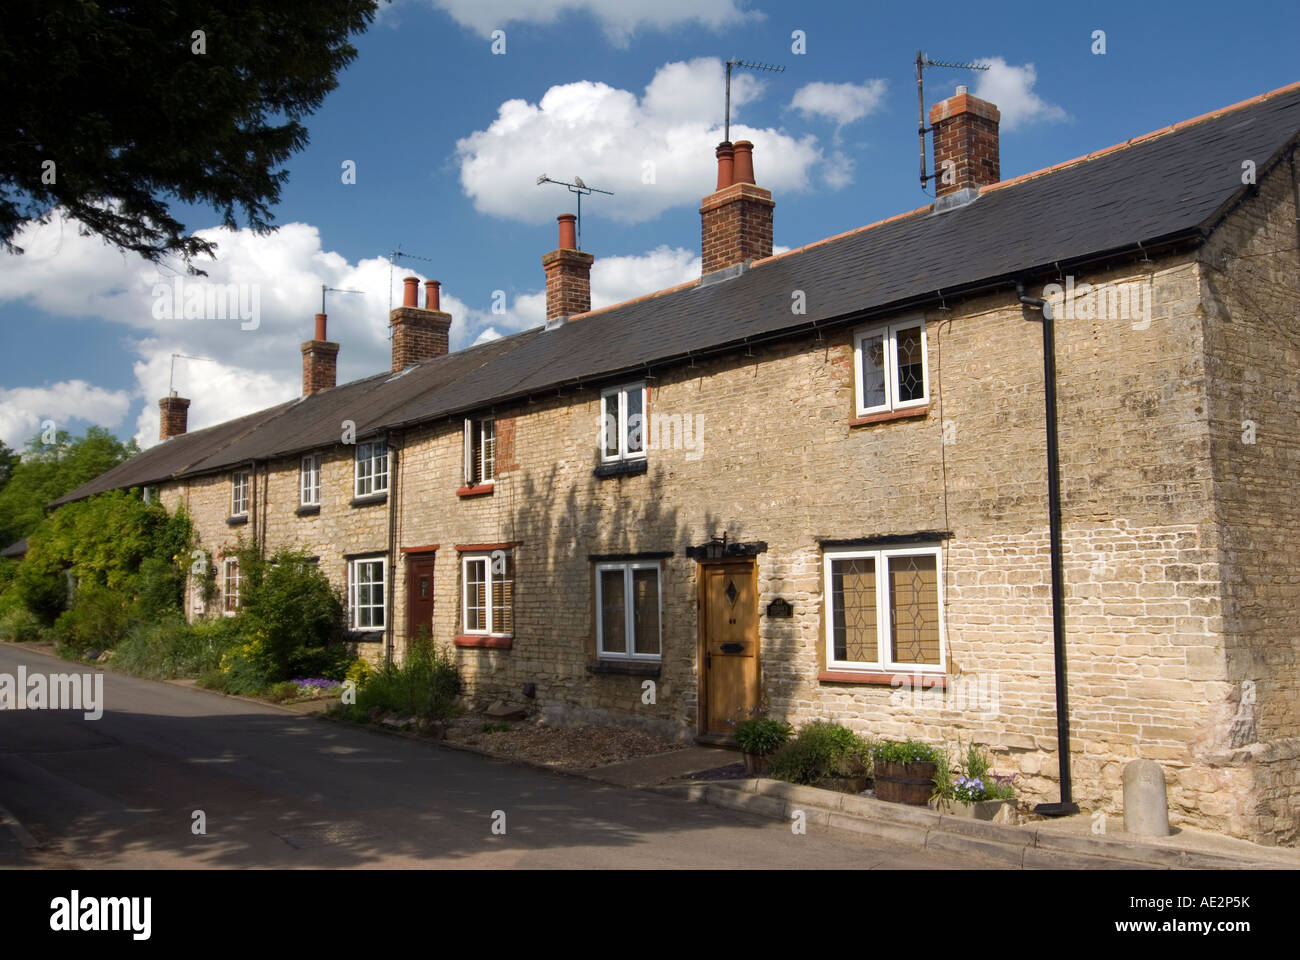 Traditional looking stone cottages at Cosgrove on the Grand Union Canal. The modern TV aerials have been kept in - Stock Image